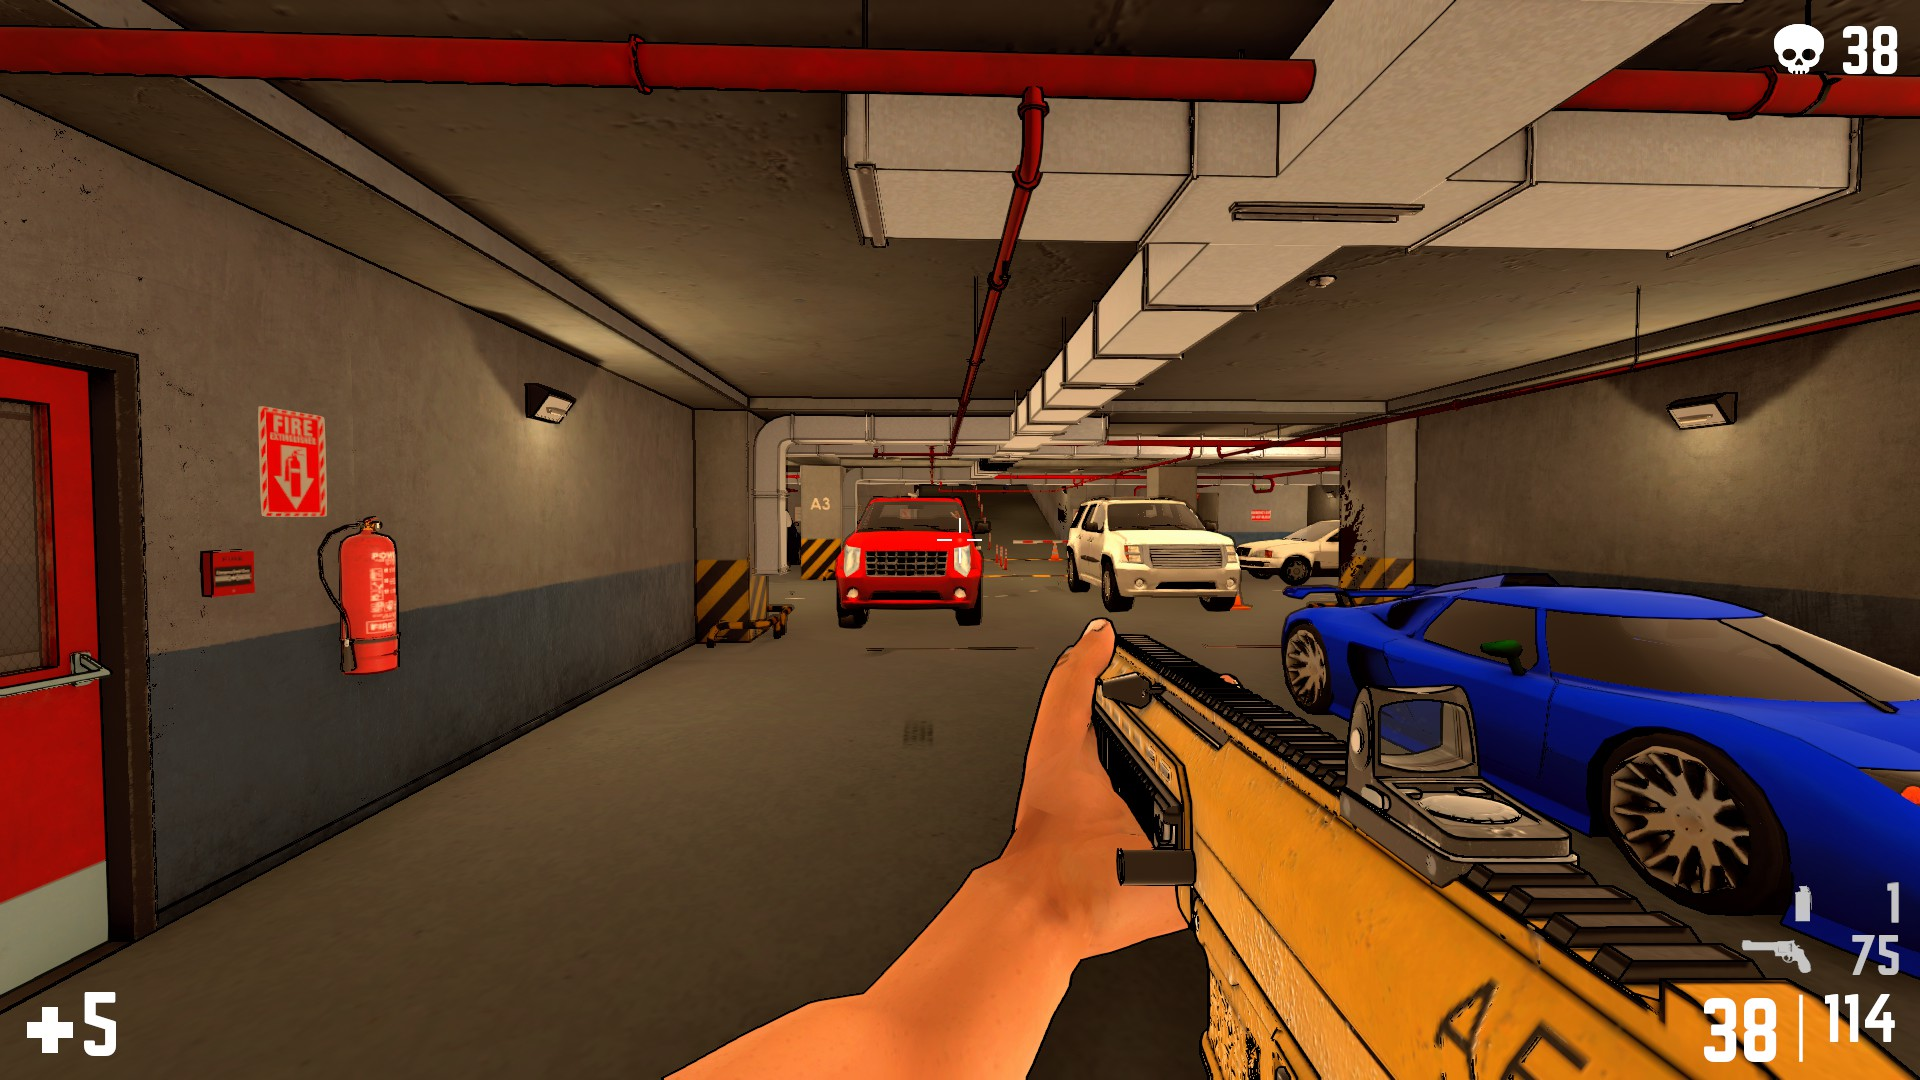 Parking garage, one of the two maps in the horde mode.